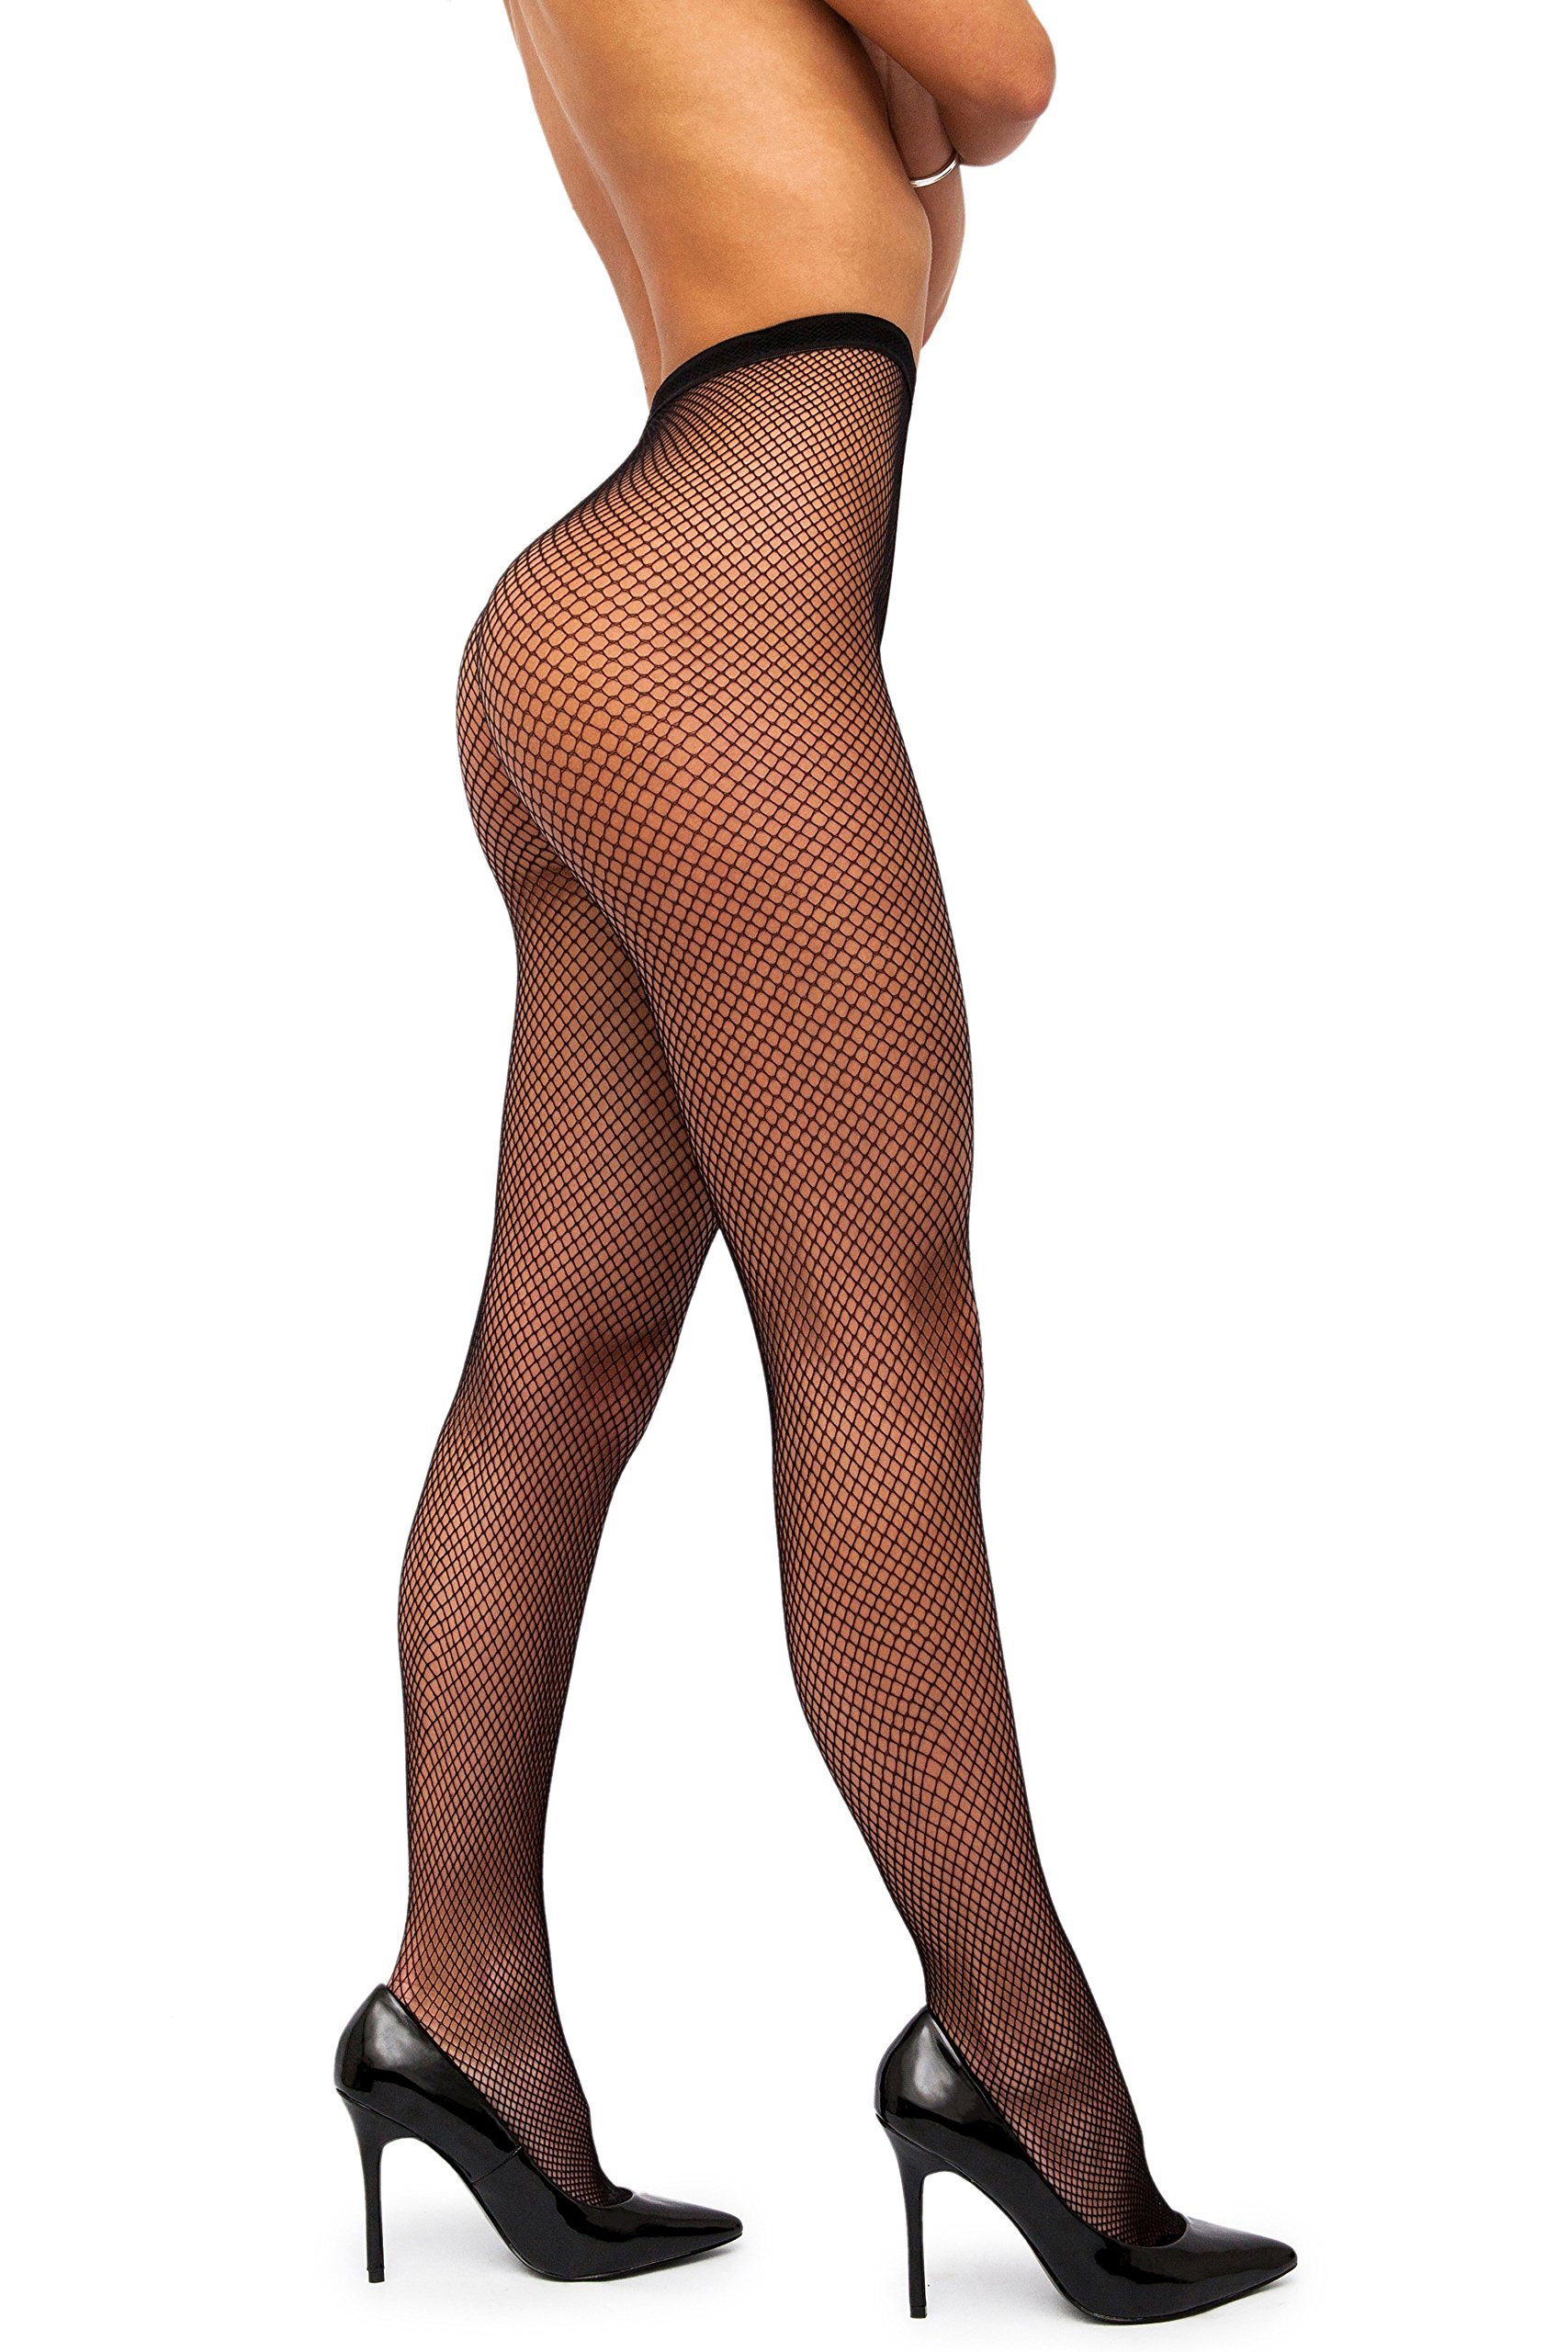 sofsy Fishnet Pantyhose Tights High Waist Nylon Stockings Net Lingerie Hosiery [Made In Italy] Black 1/2 - X-Small/Small